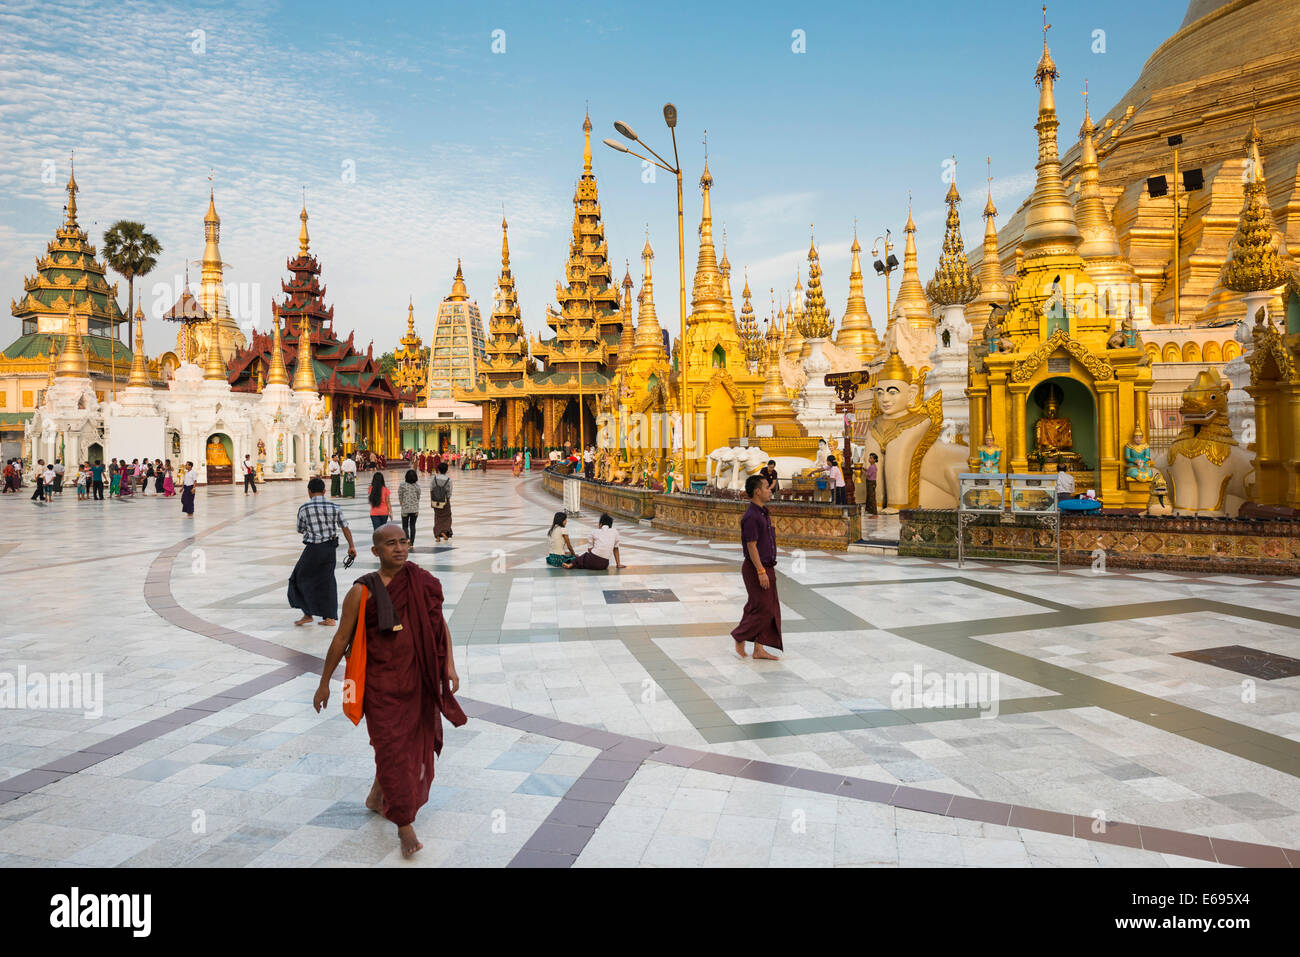 Monks, worshipers and visitors, shrines, stupas, chedis, Shwedagon Pagoda, Singuttara Hill, Yangon, Yangon Region, - Stock Image